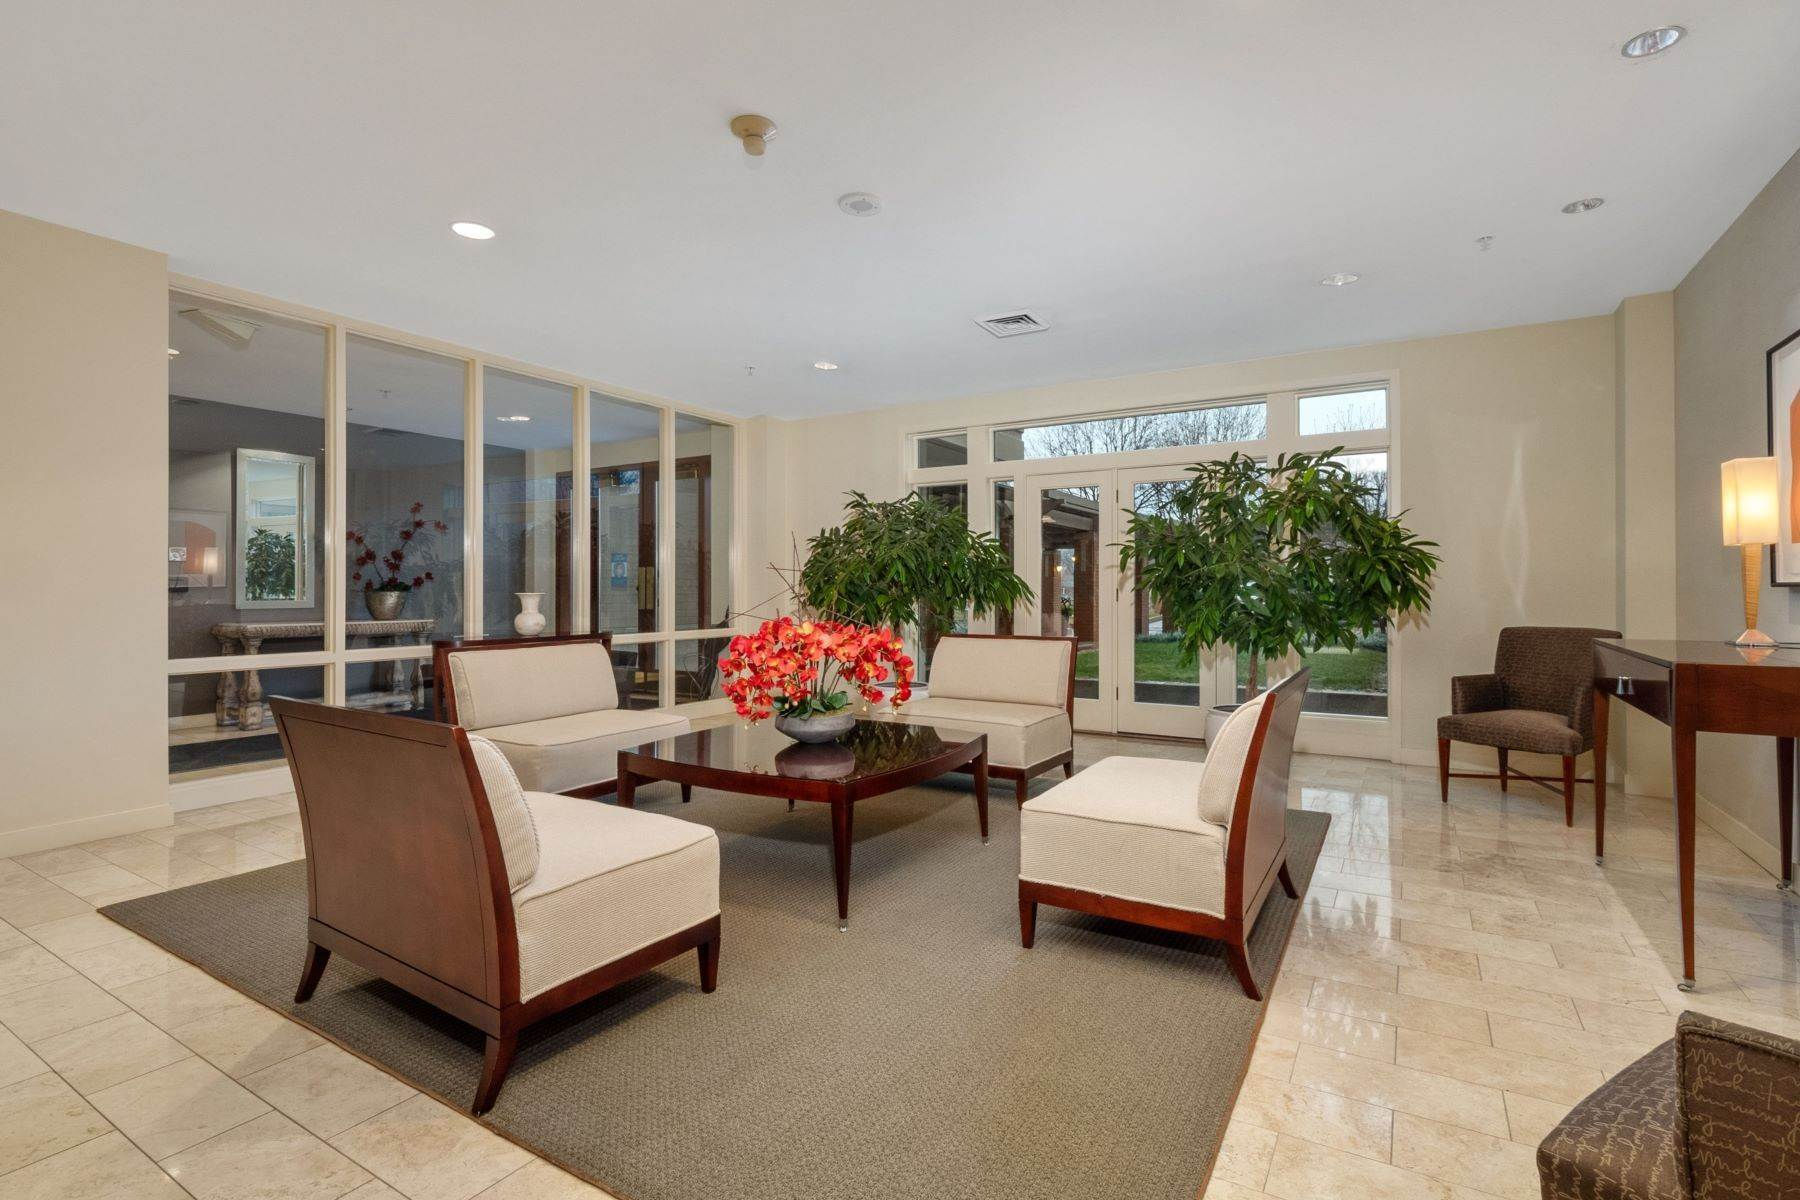 19. Condominiums for Sale at Gorgeous Clayton Condo with Private Balcony 800 South Hanley Road 4A Clayton, Missouri 63105 United States